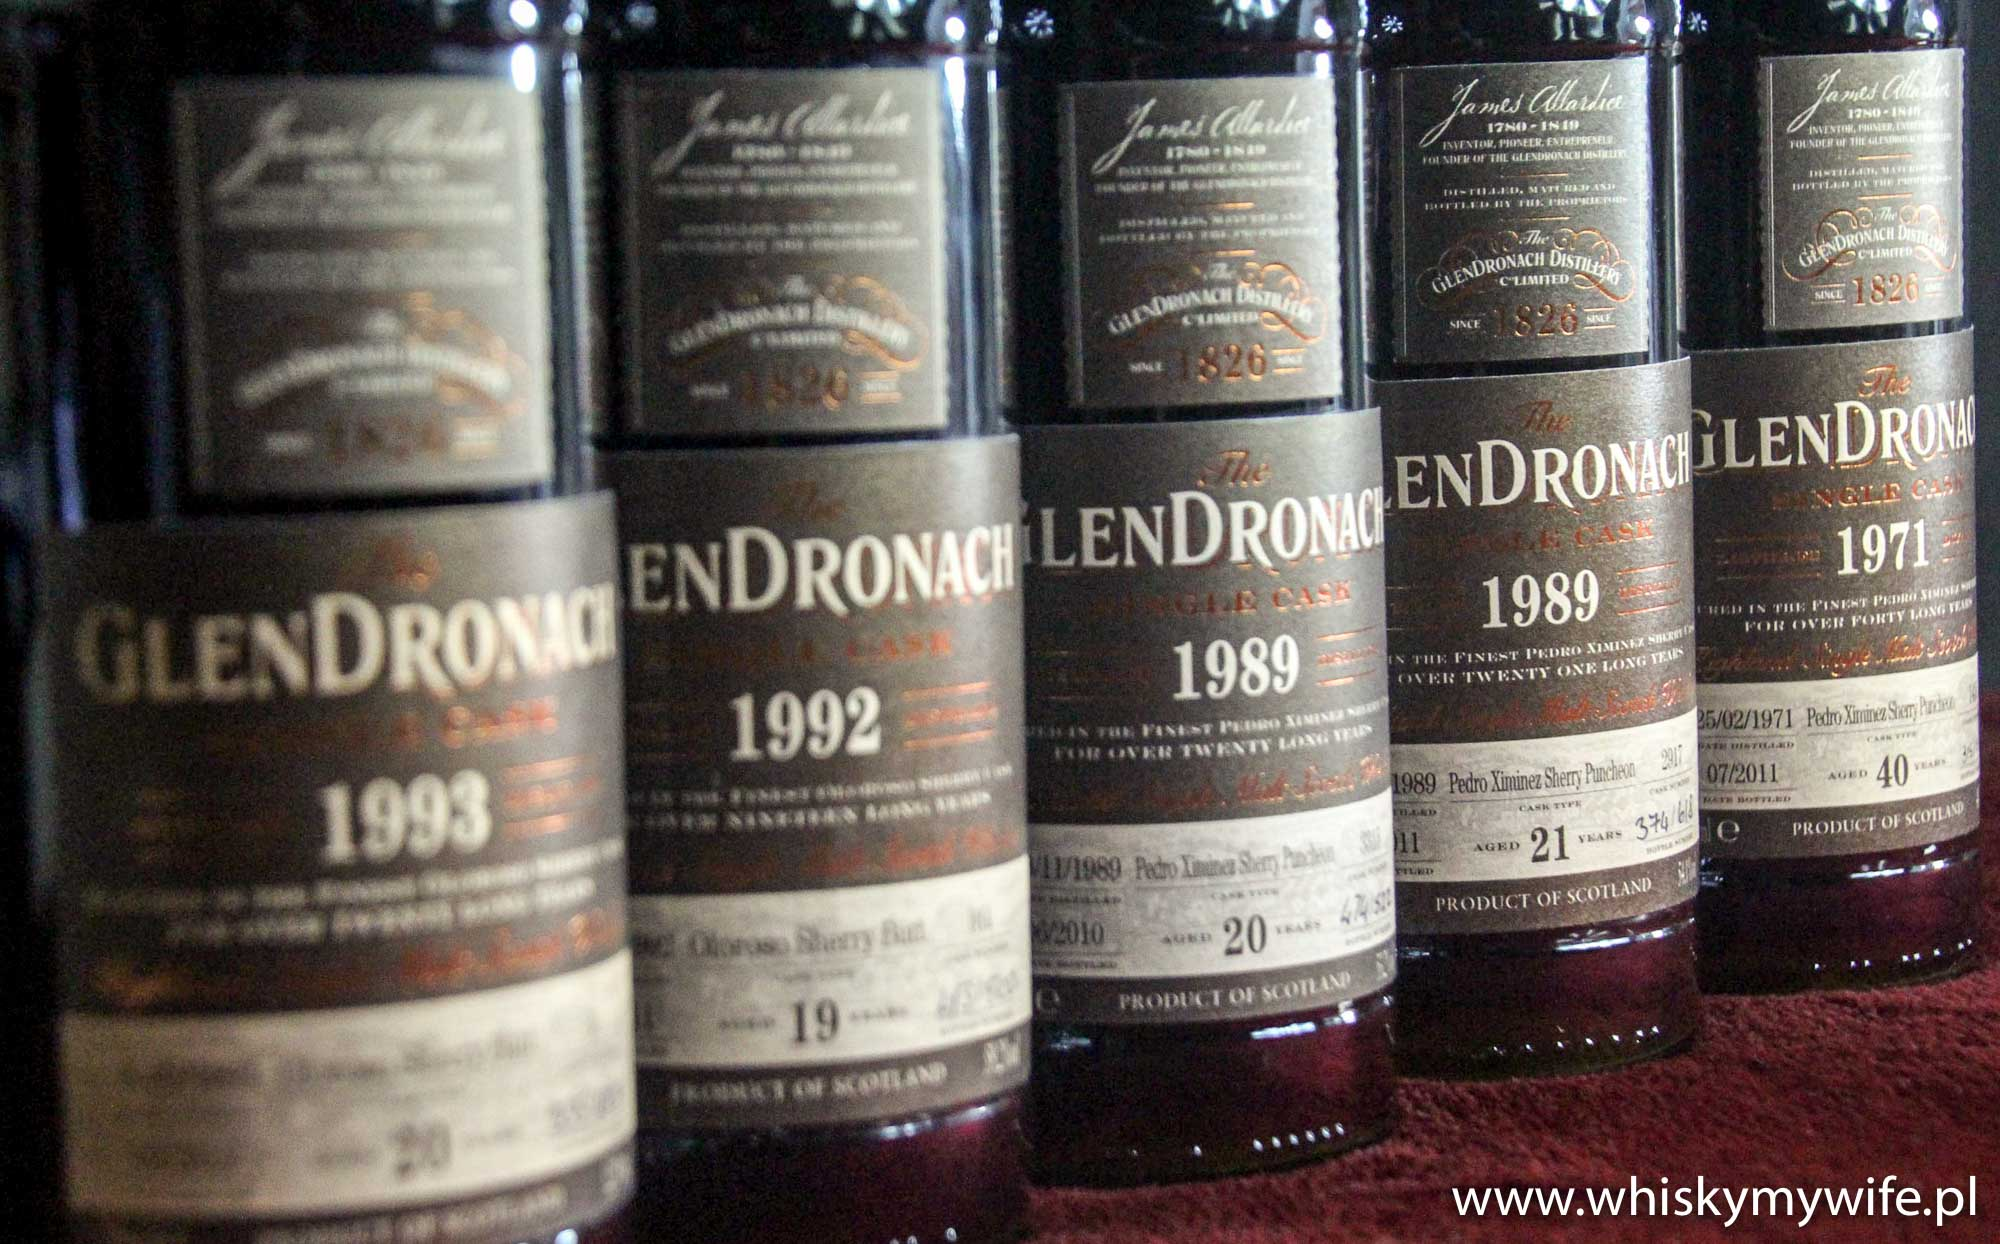 WhiskyandFriends Glendronach